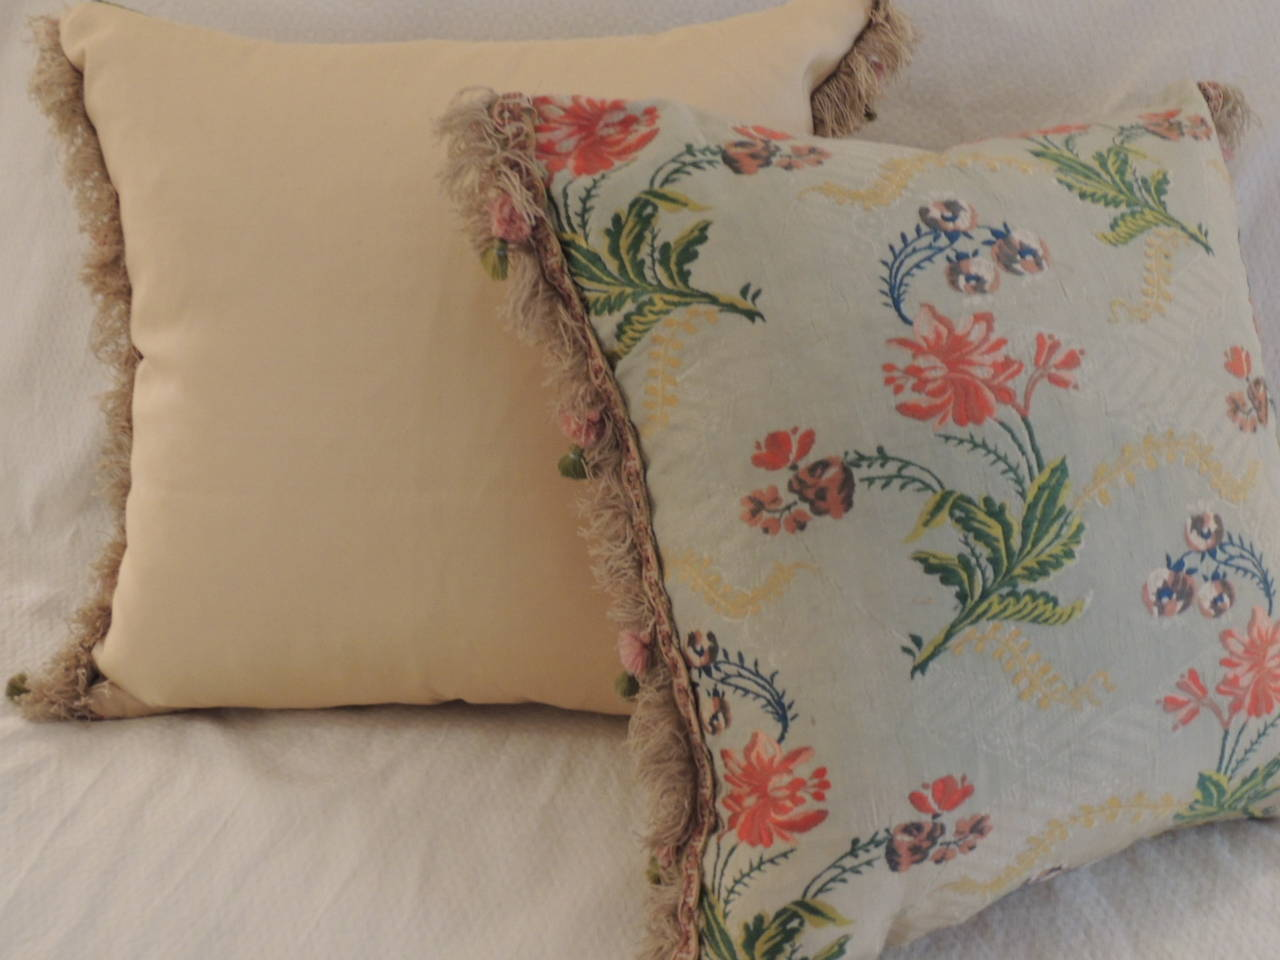 Decorative Pillows Trim : Pair of Antique Silk Brocade Floral Decorative Pillows with Tassel Trim For Sale at 1stdibs